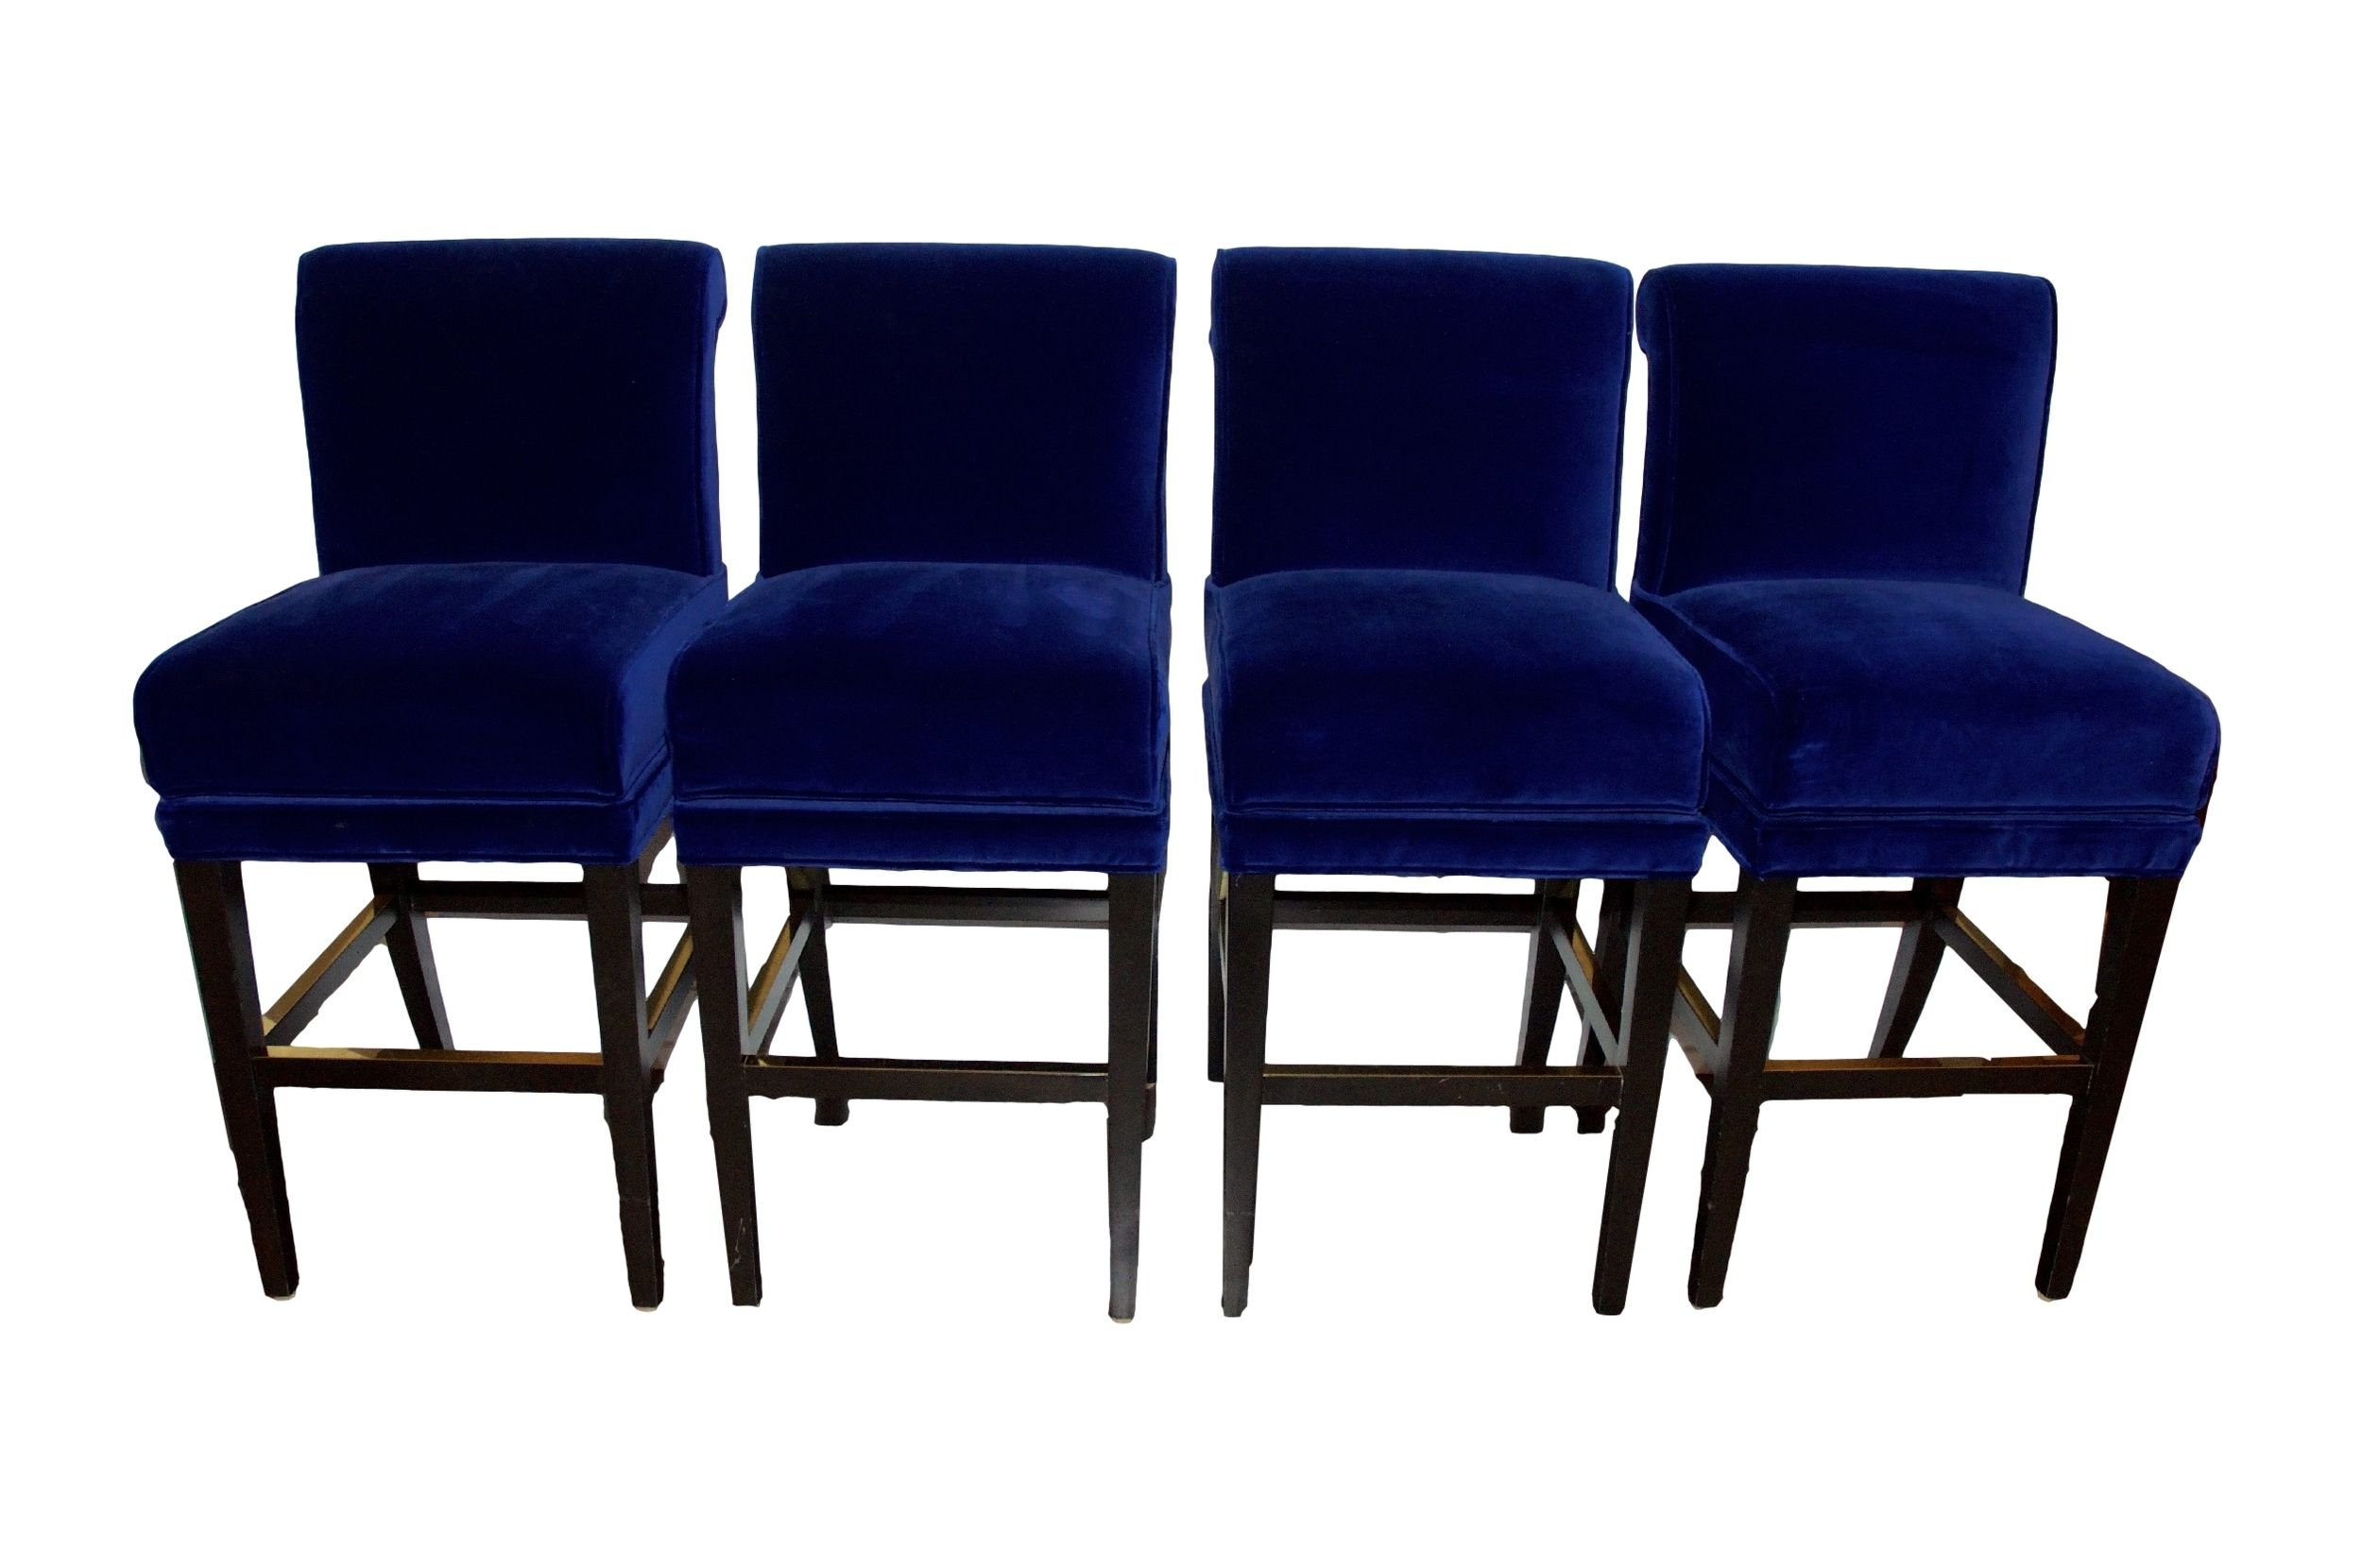 Set of four dark blue velvet bar stools with metal foot rest within